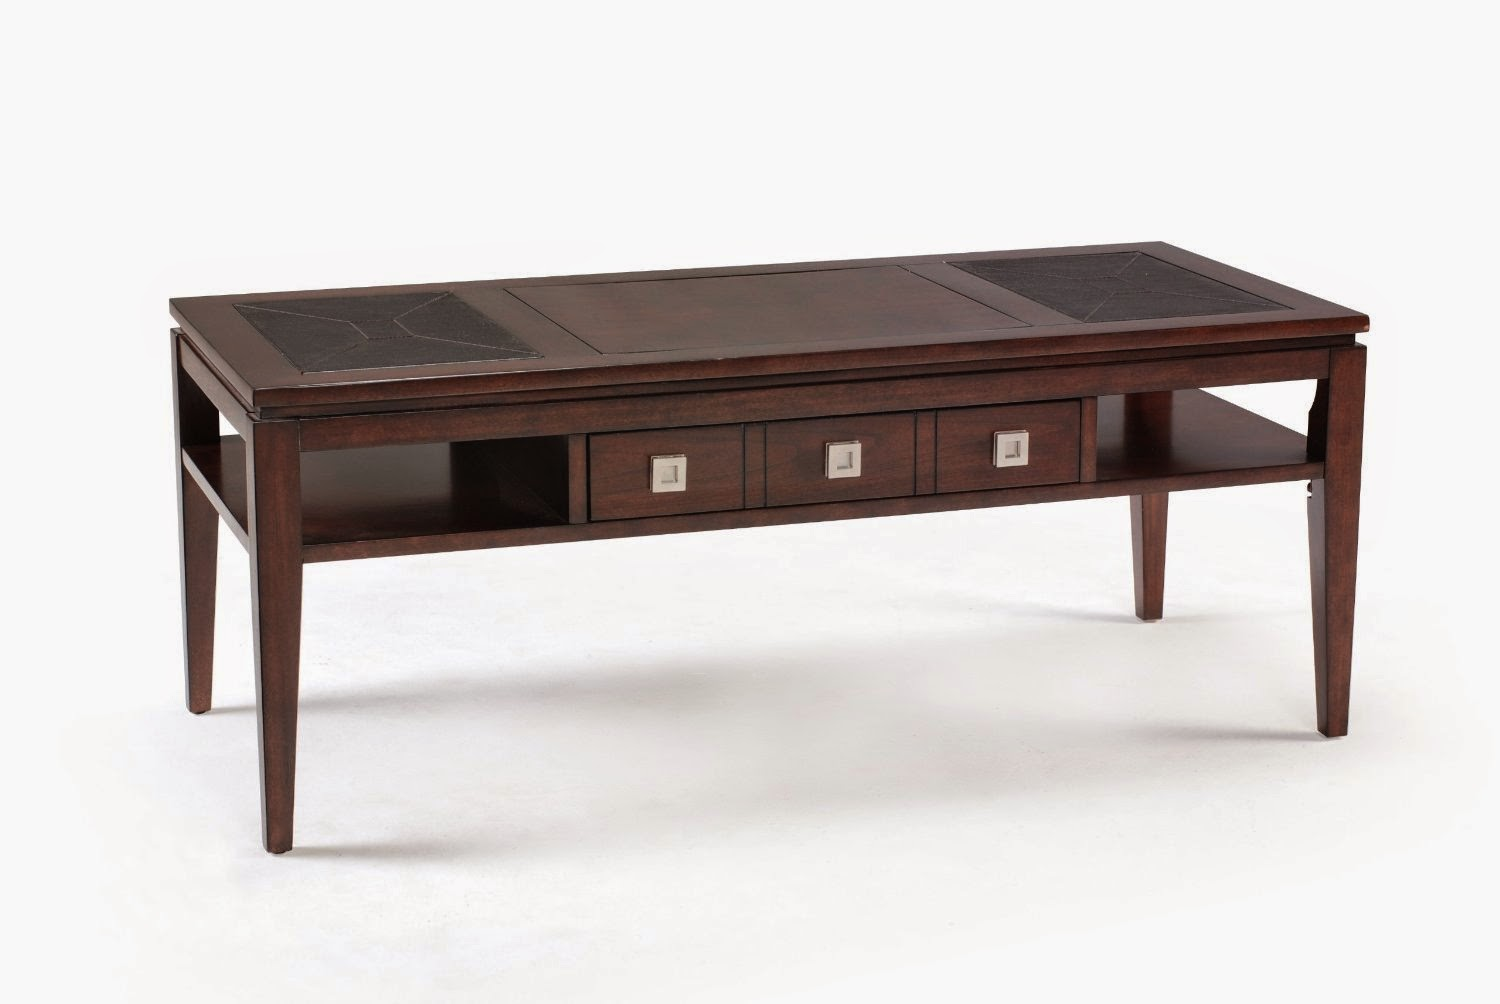 Most Expensive Coffee Table Home Design Interior Design